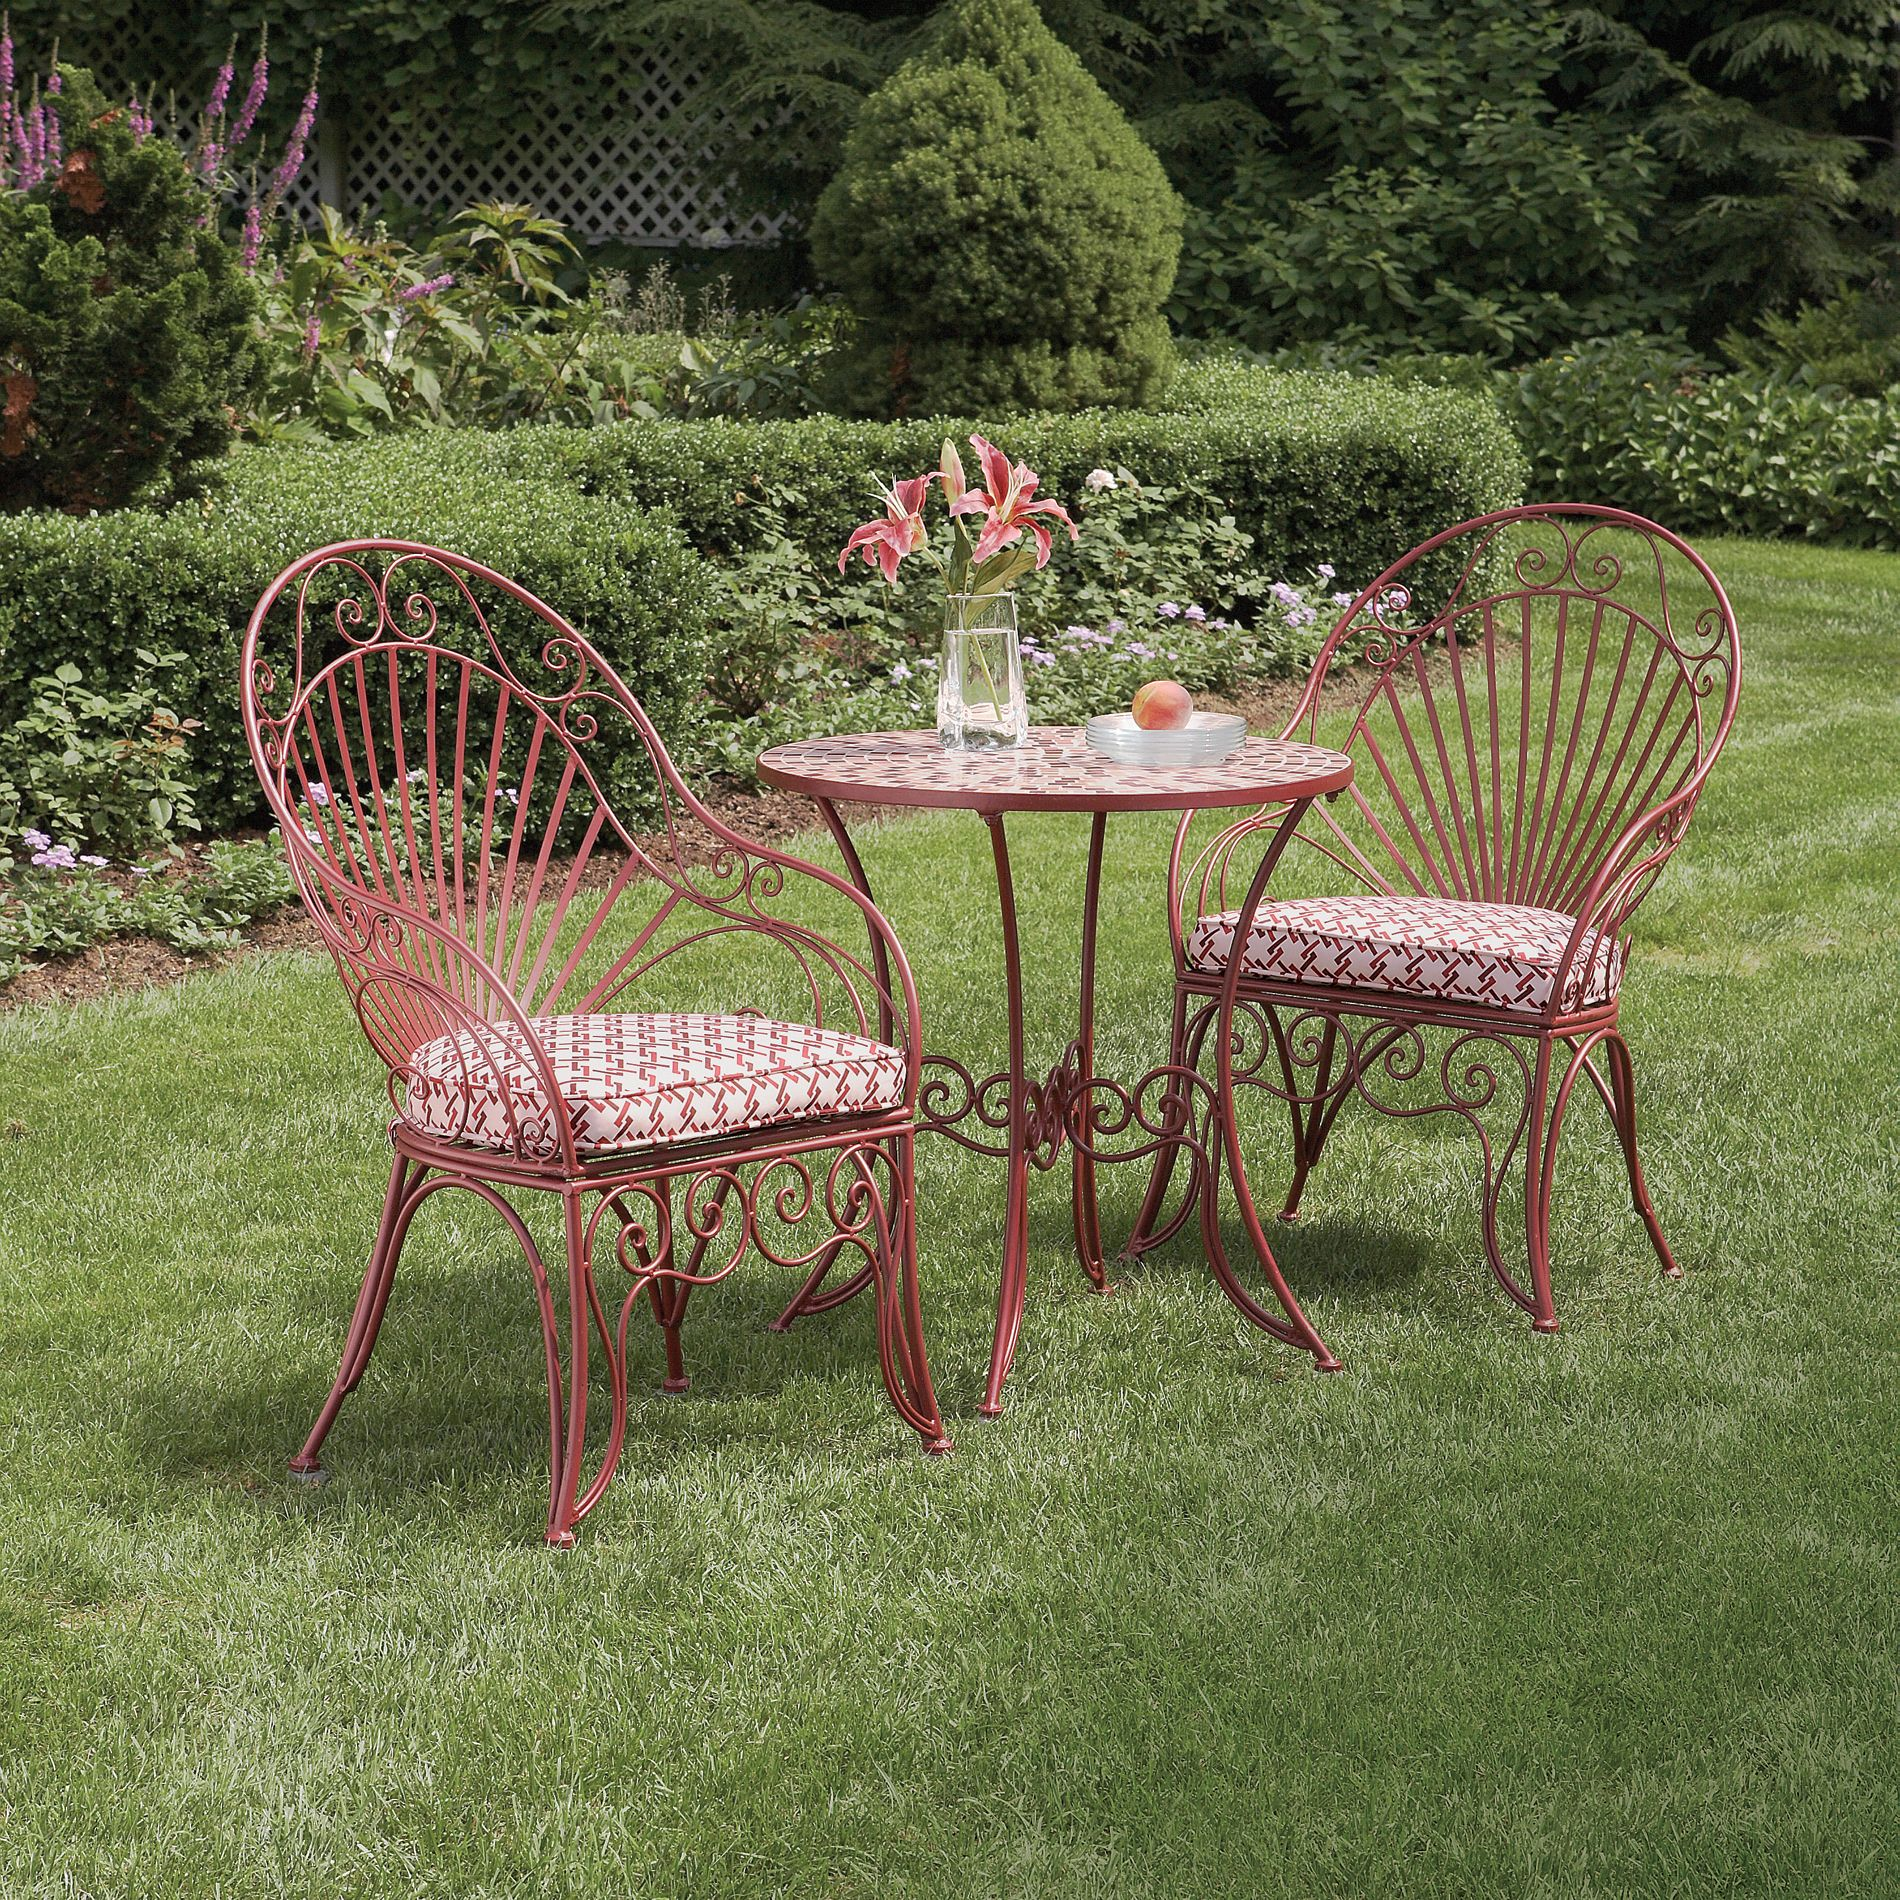 Garden Oasis - L-bs299sst-1 Wrought Iron Bistro Set With